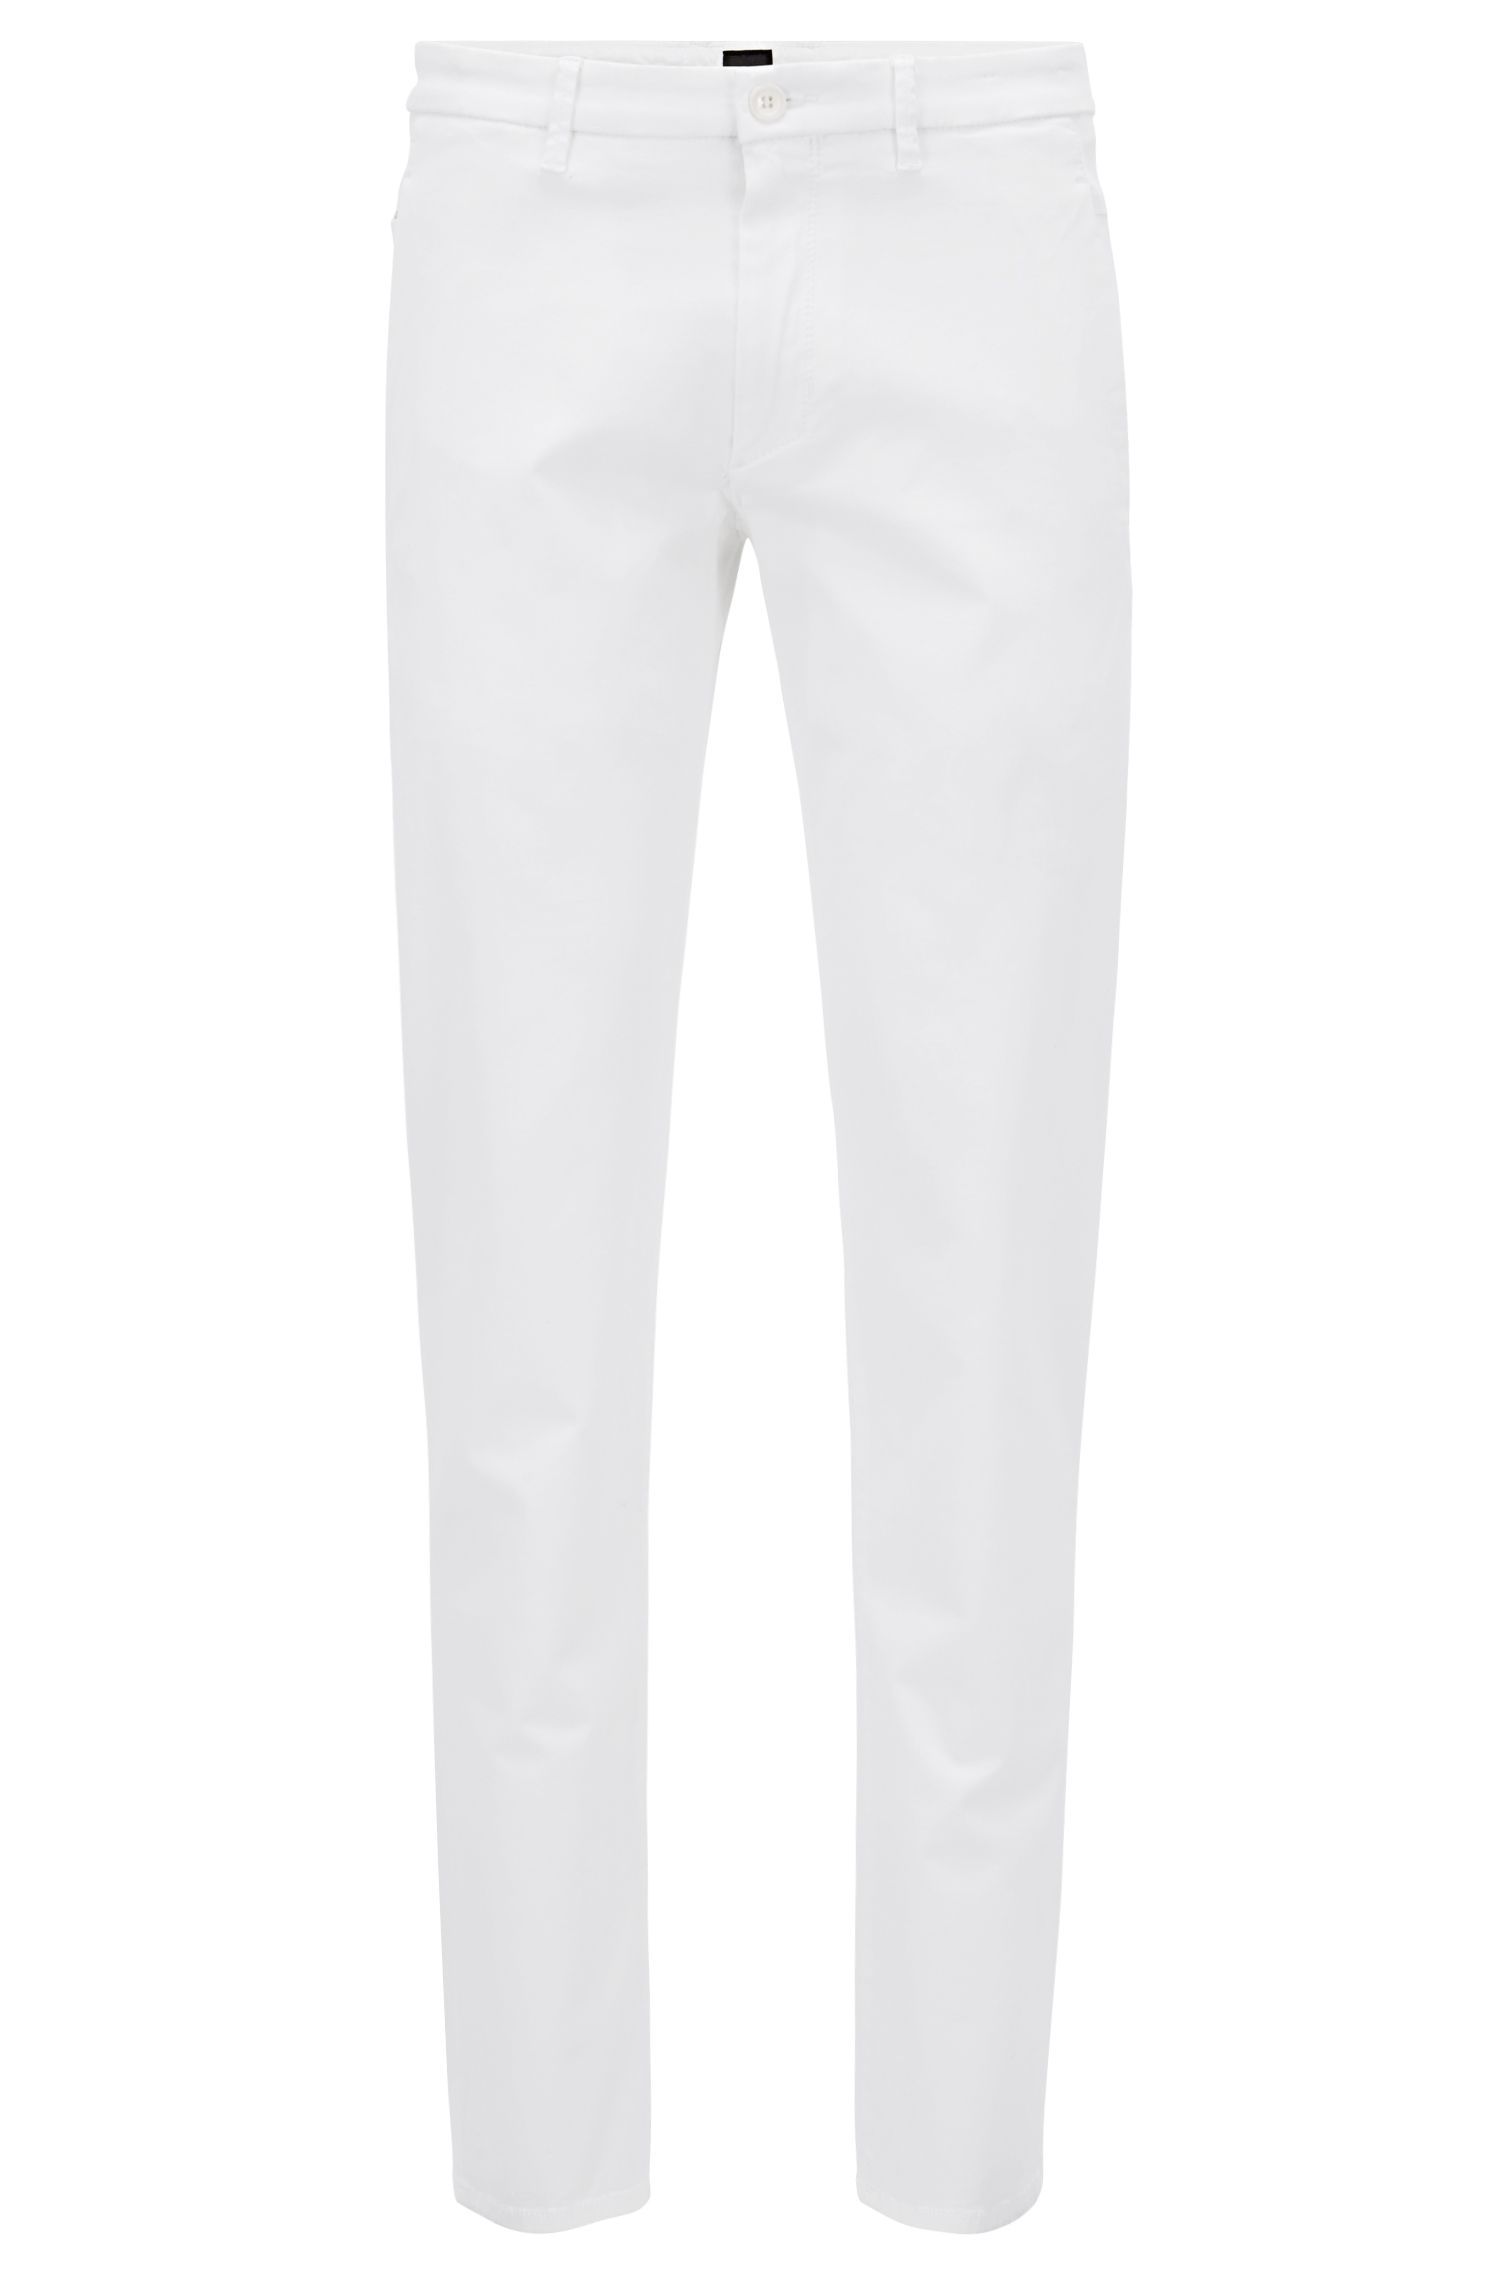 Regular-Fit Chino aus elastischem Baumwoll-Mix mit Satin-Finish, Weiß